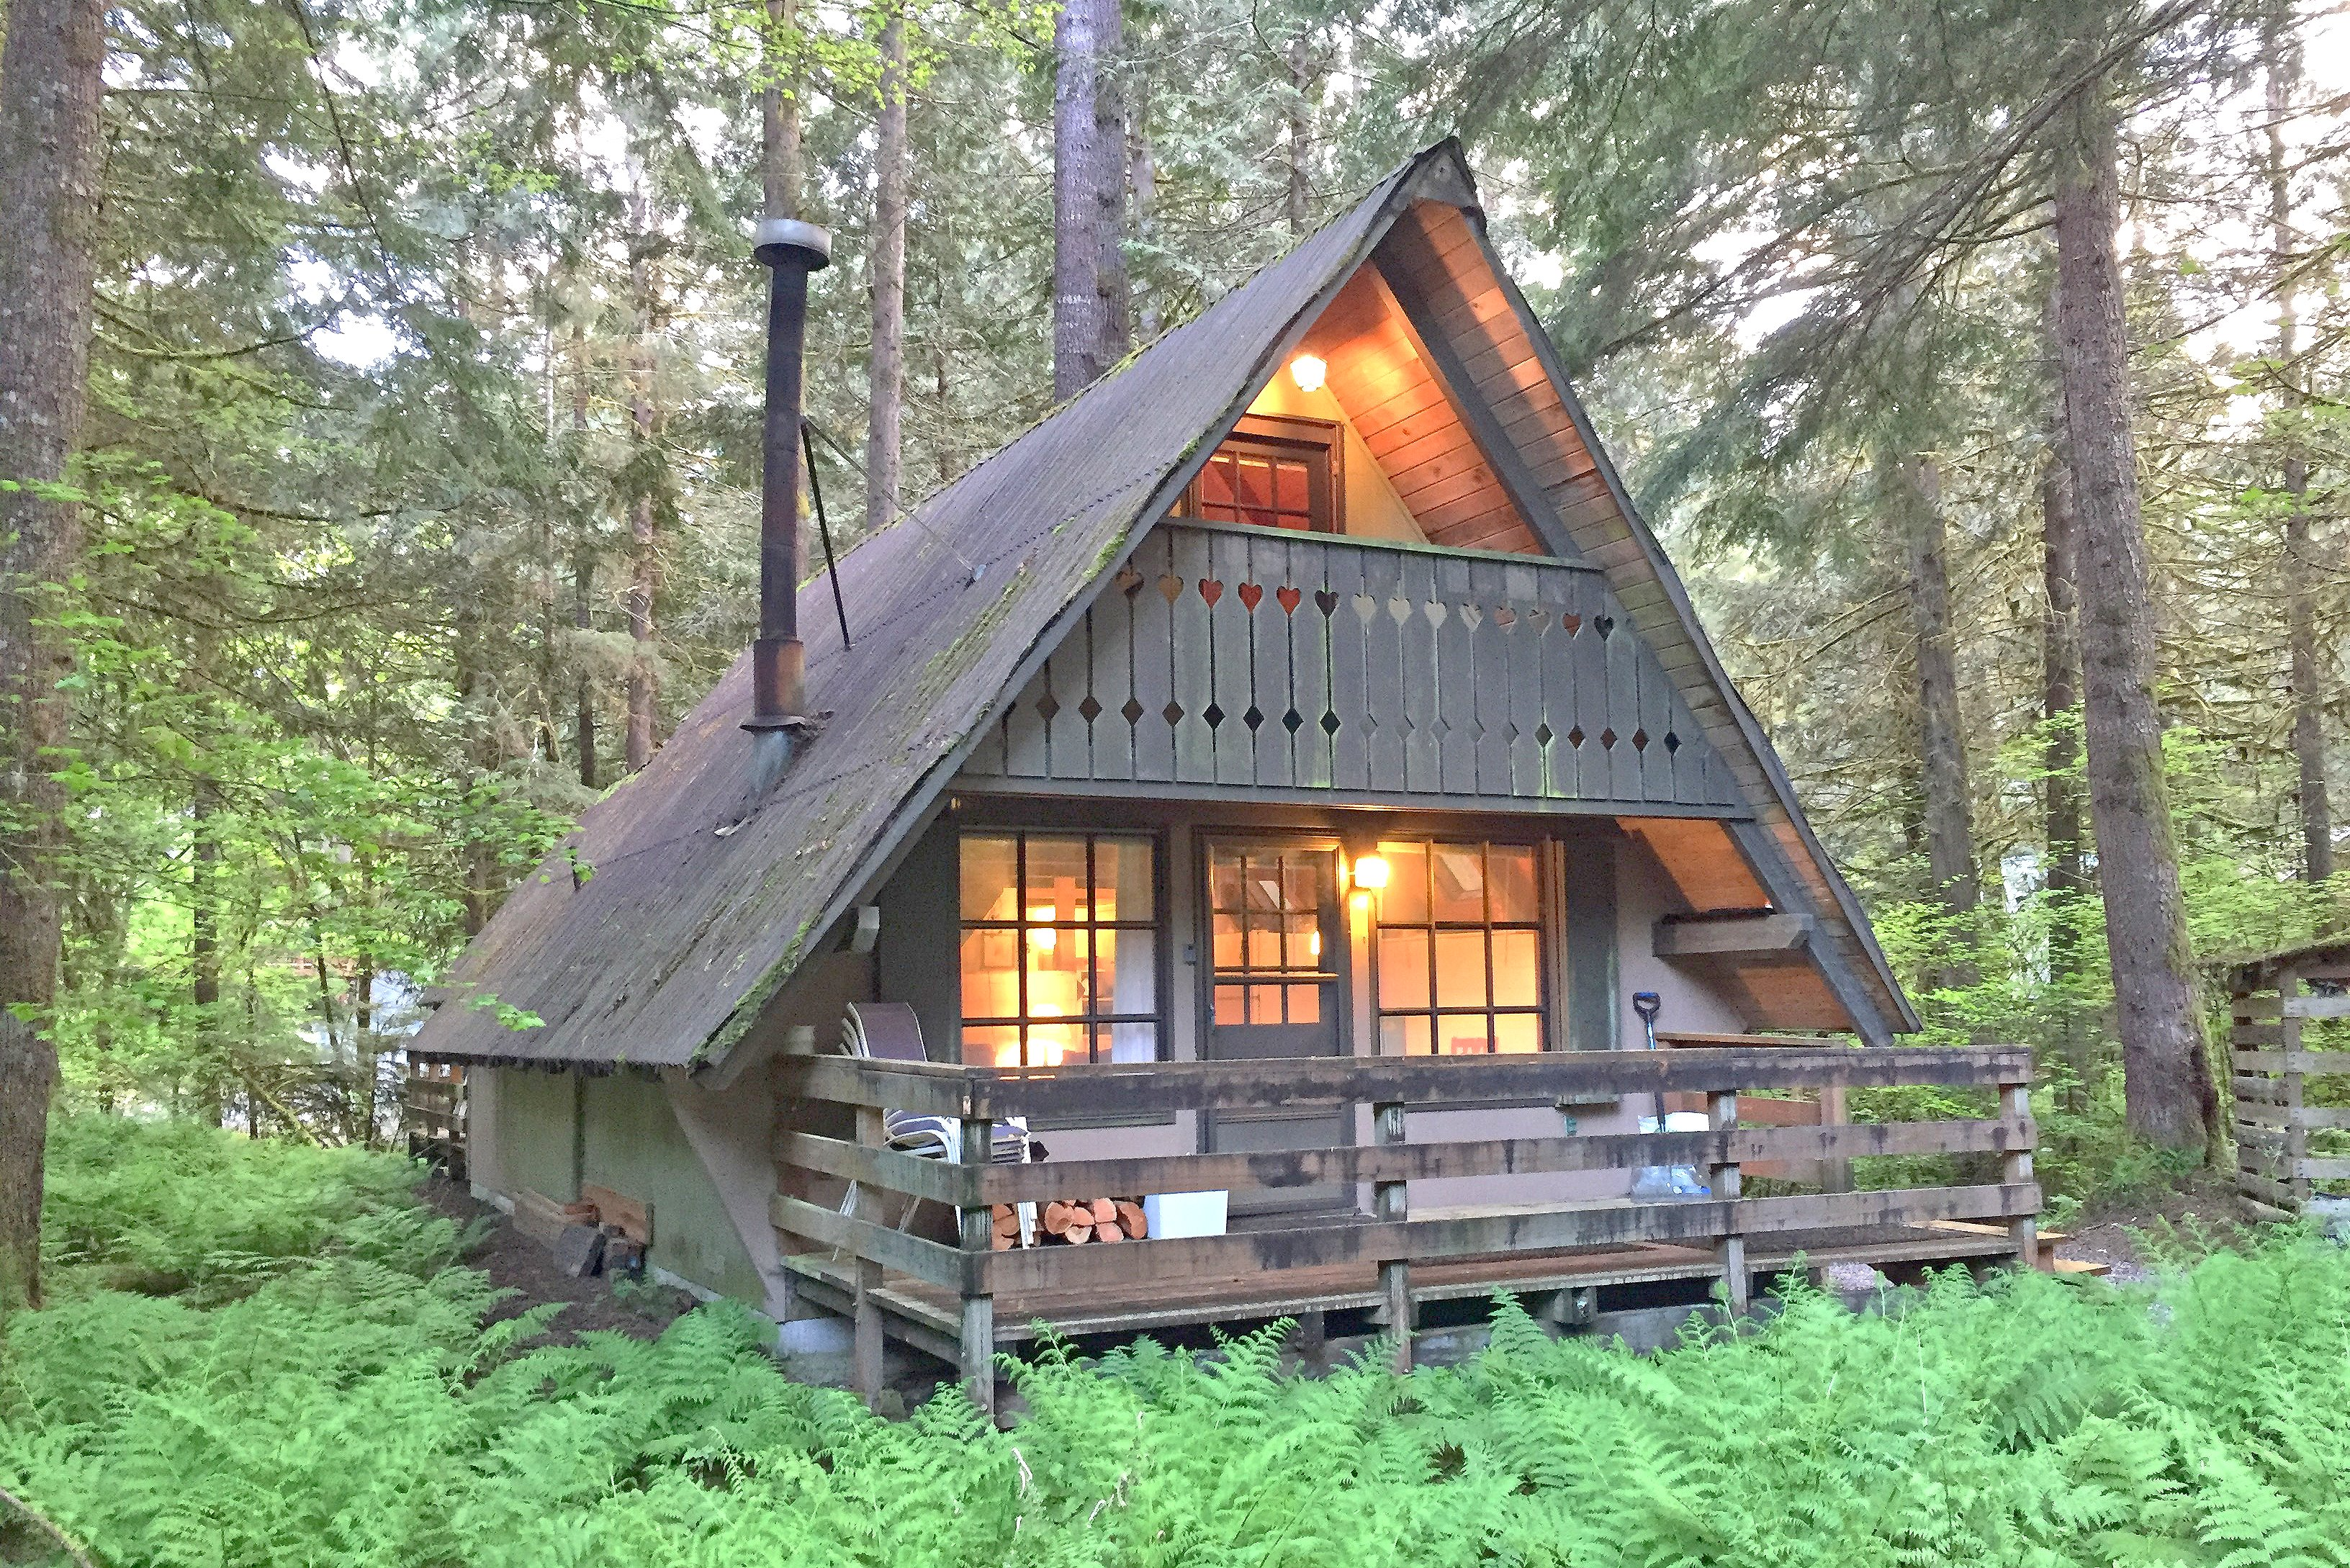 Enjoy this cute rustic cabin